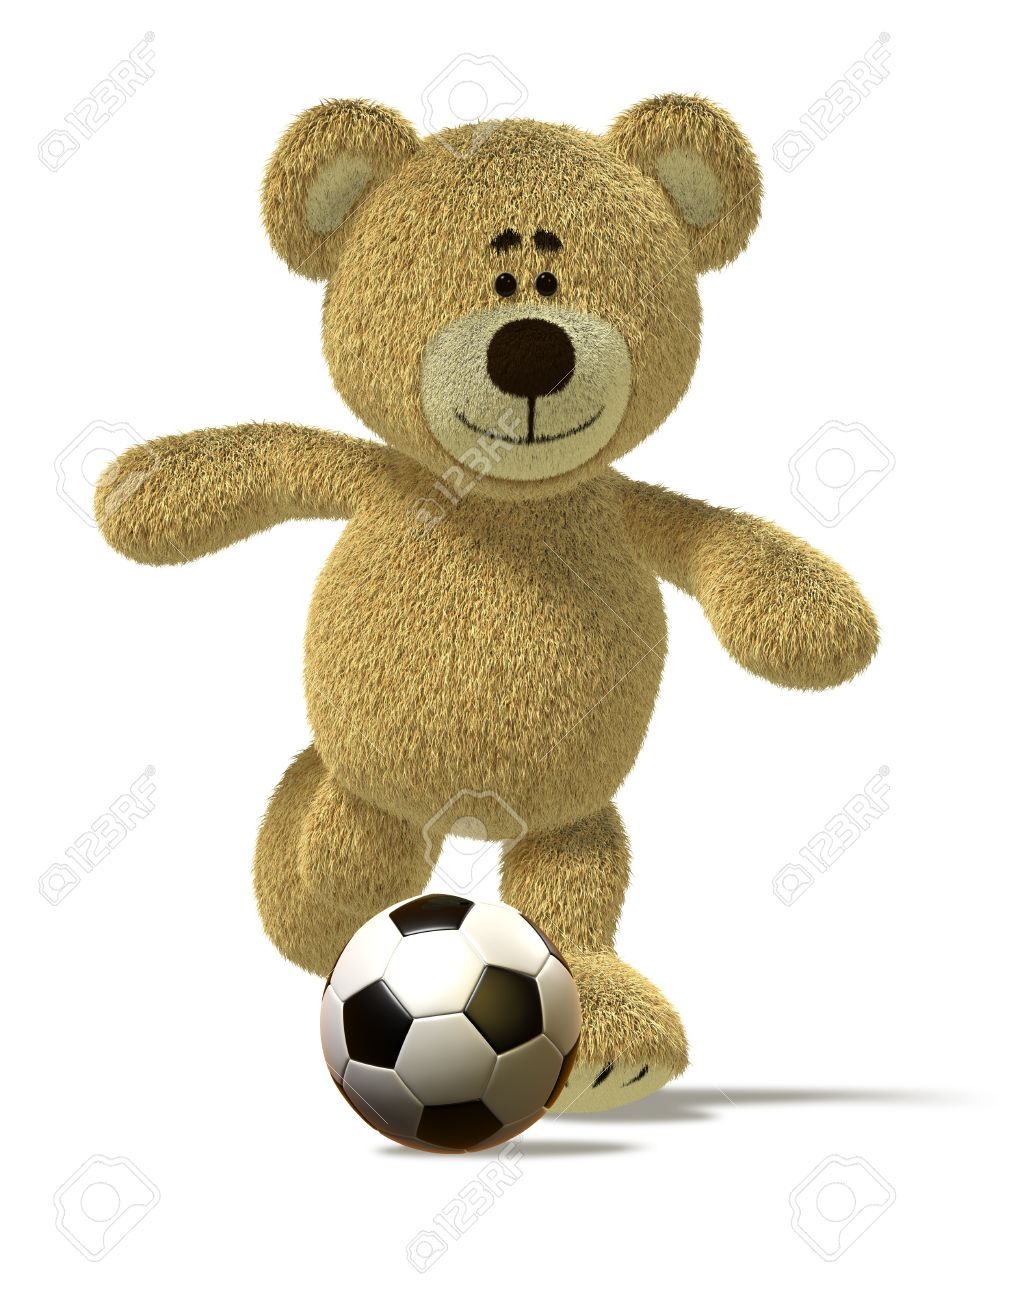 f56a6adf Stock Photo - Teddy Bear is running and about to kick off a soccer ball in  front of him. This image is isolated on white with soft shadows.